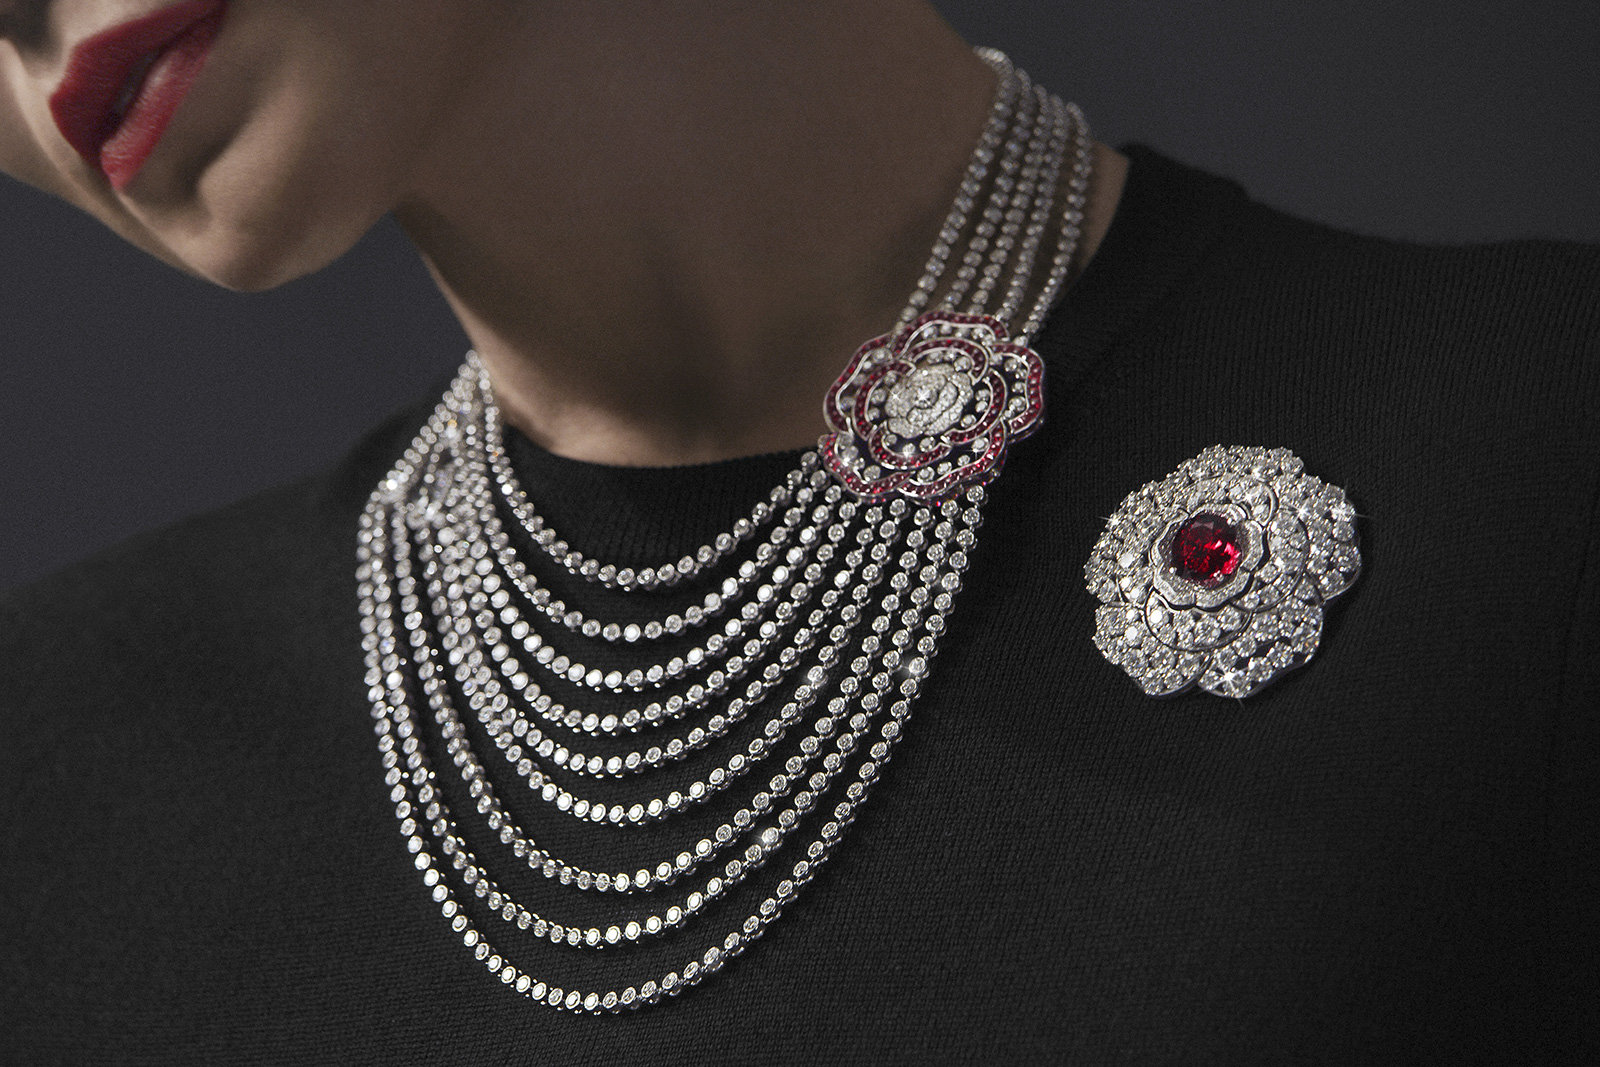 Chanel '1.5. 1 CAMÉLIA . 5 ALLURES' collection 'Rouge Incandescent' transformable necklace, in white gold, rubies and diamonds. Detachable camellia motif that may be worn as a brooch, and reveals another openwork camellia motif